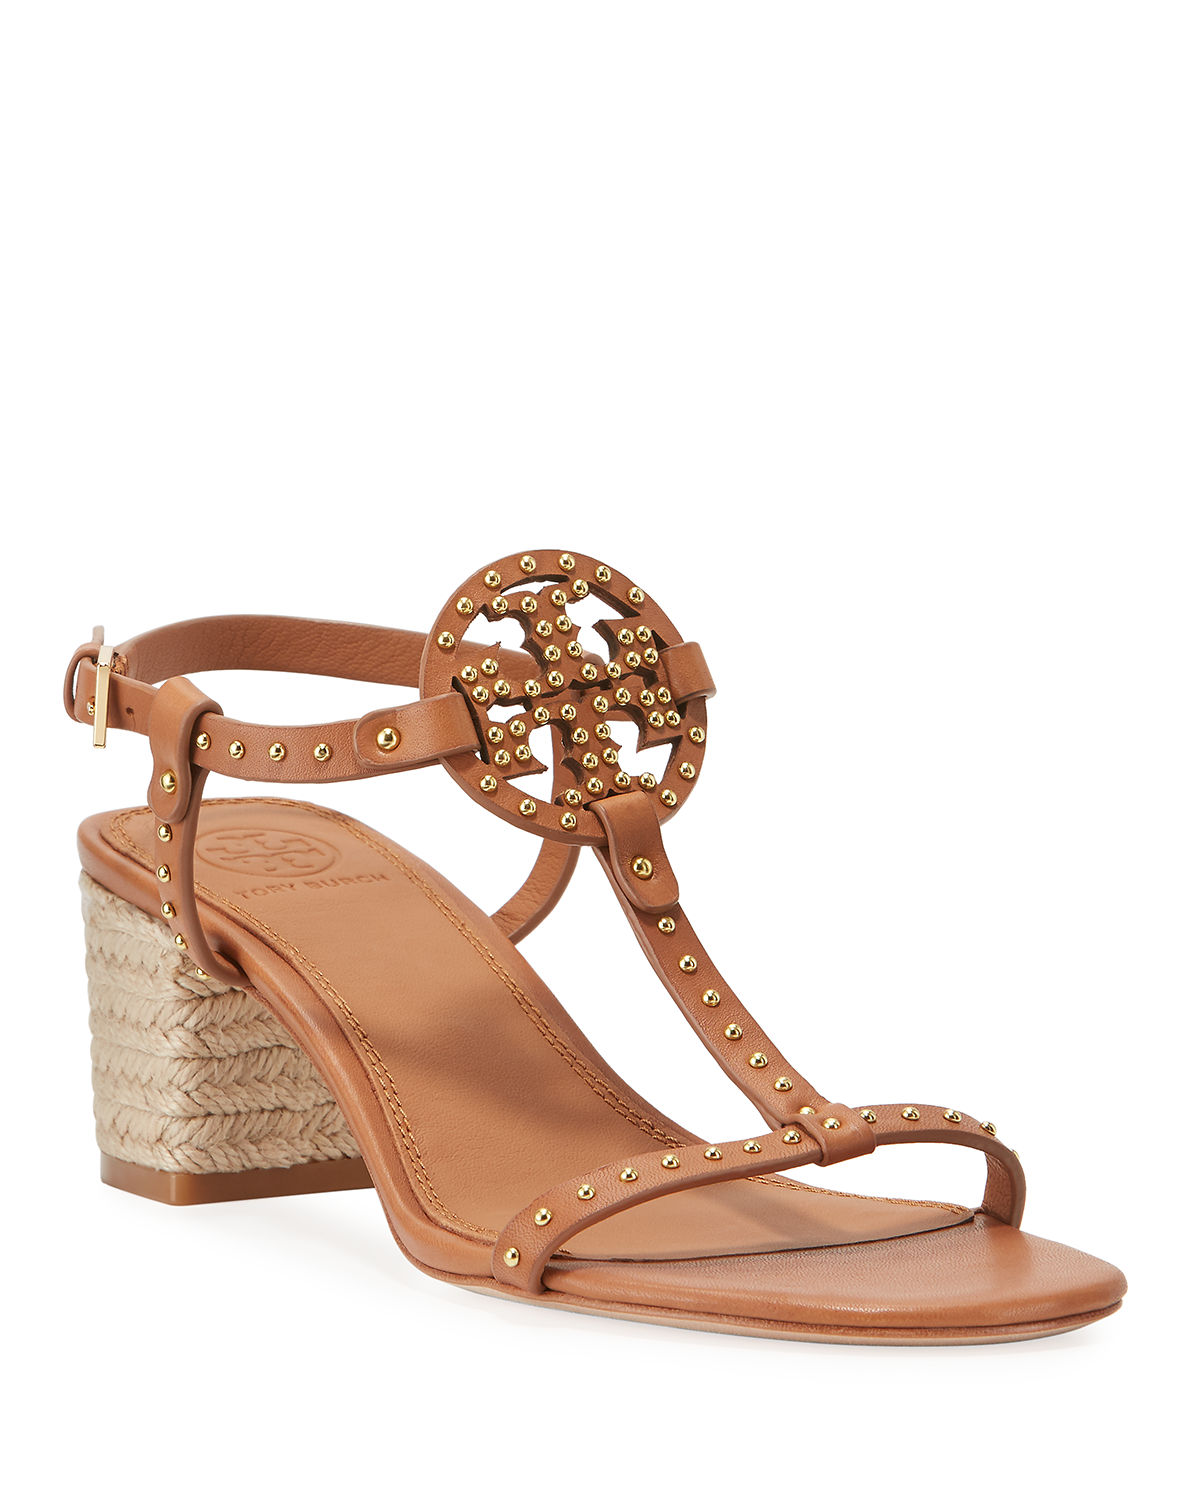 969f8c85f Tory Burch Miller Studded T-Strap Espadrille Sandals